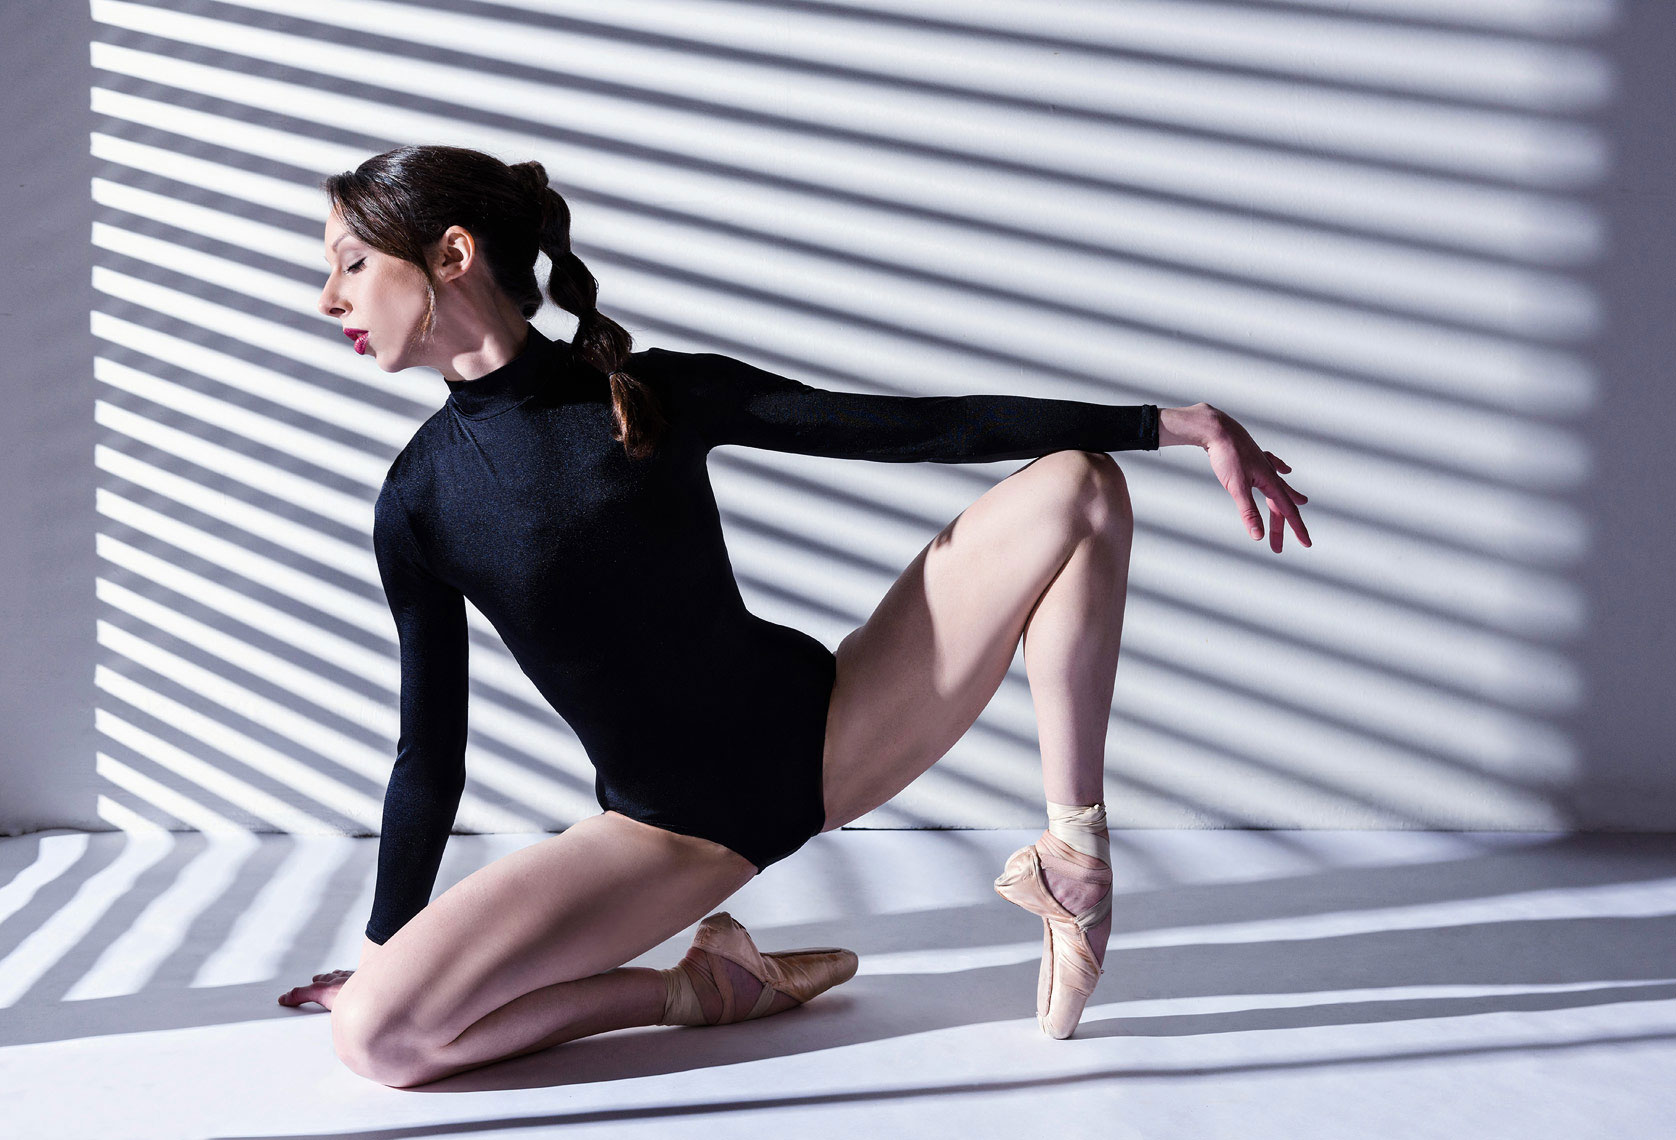 Ballerina posing in studio with lines on background.